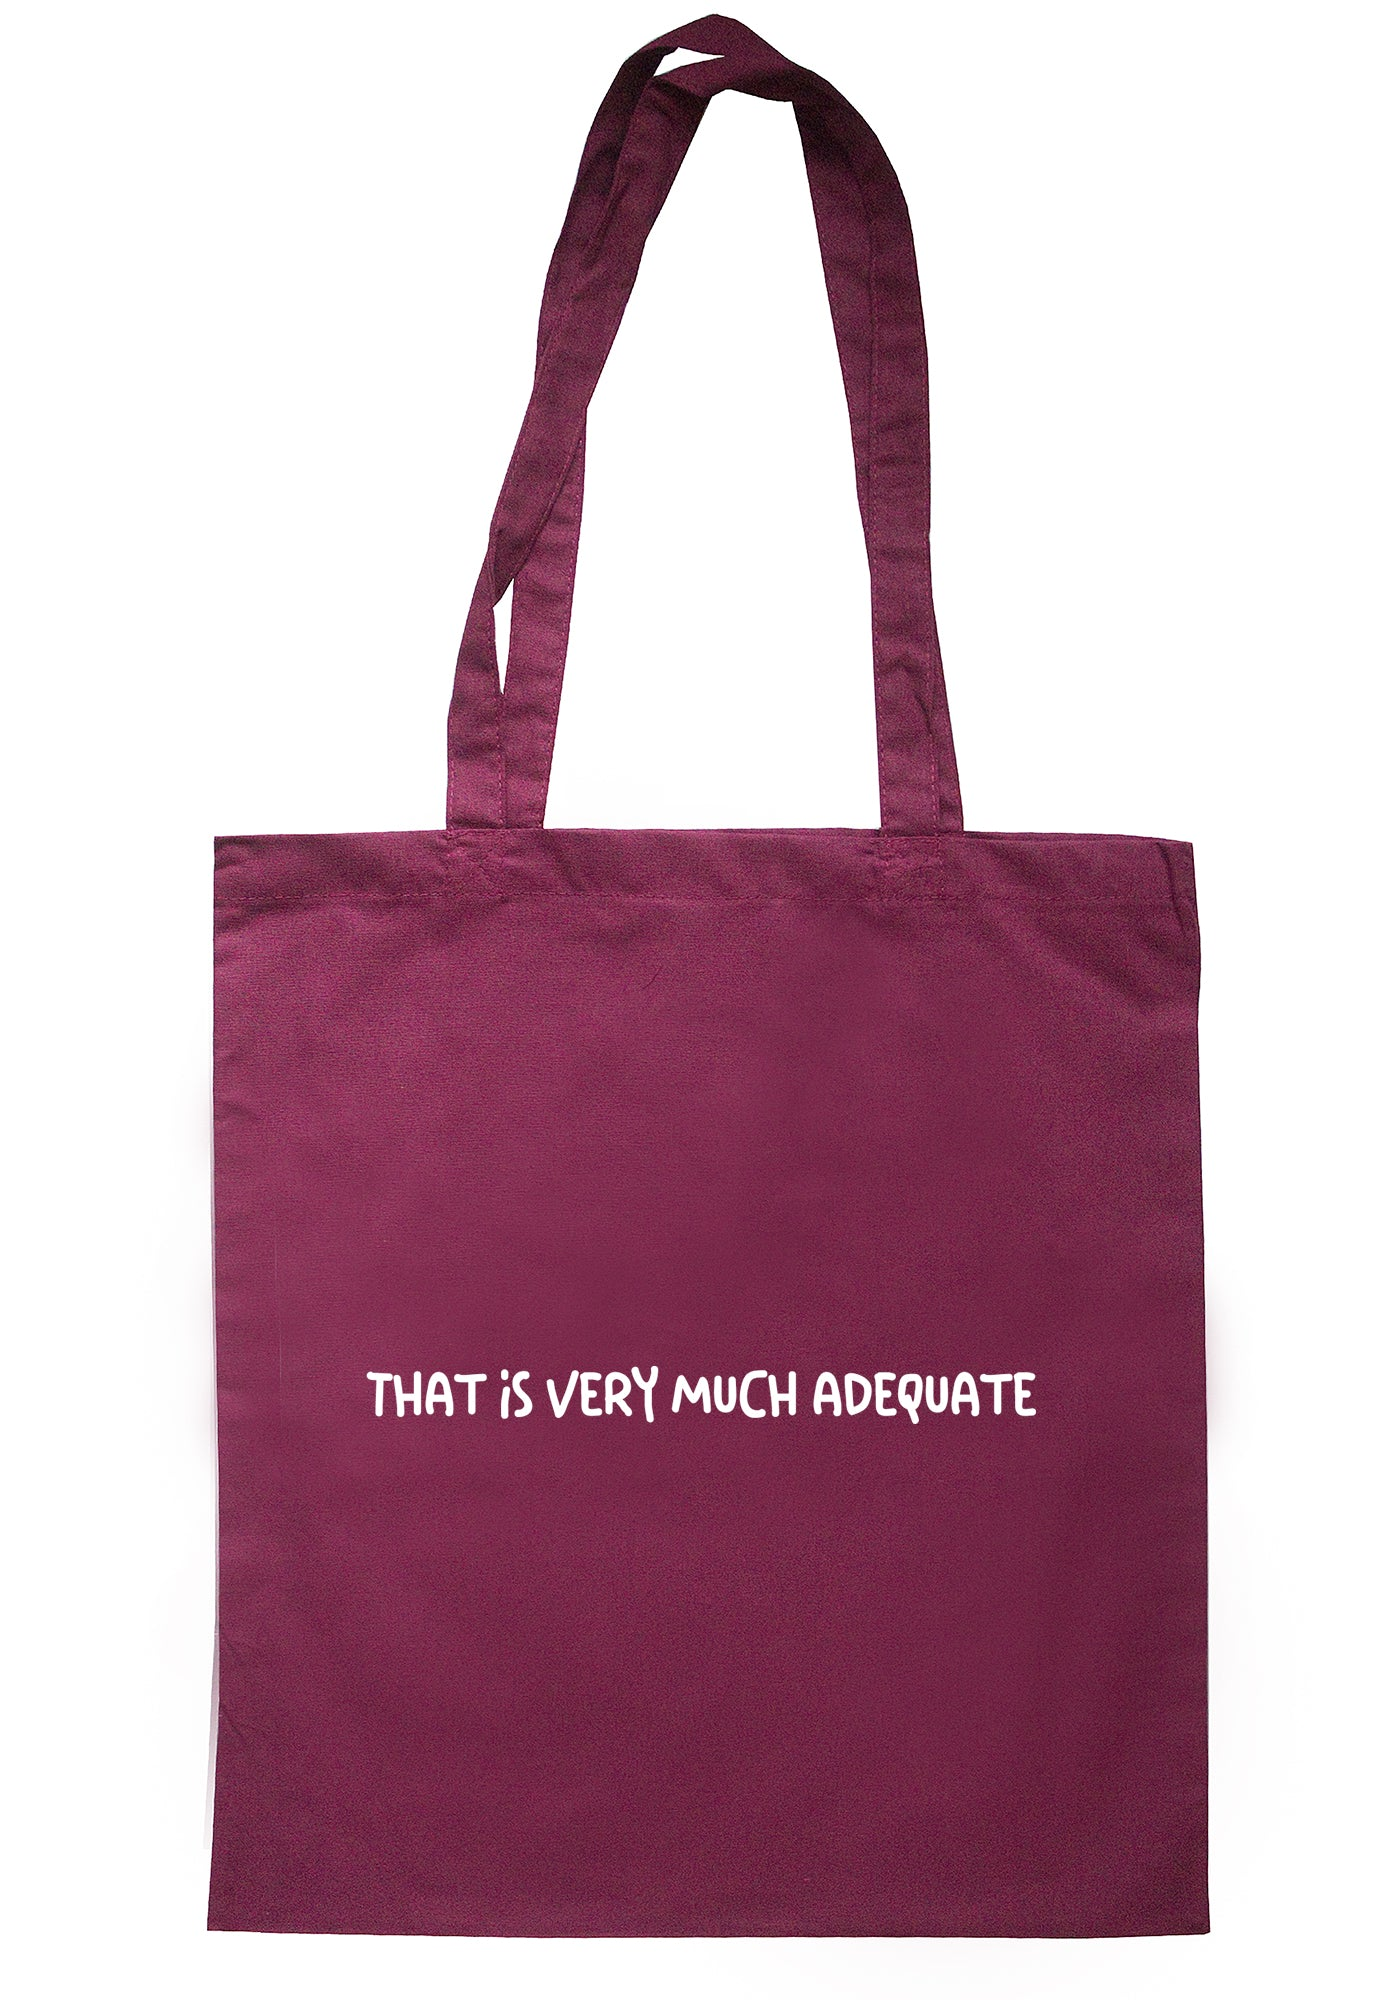 That Is Very Much Adequate Tote Bag S1211